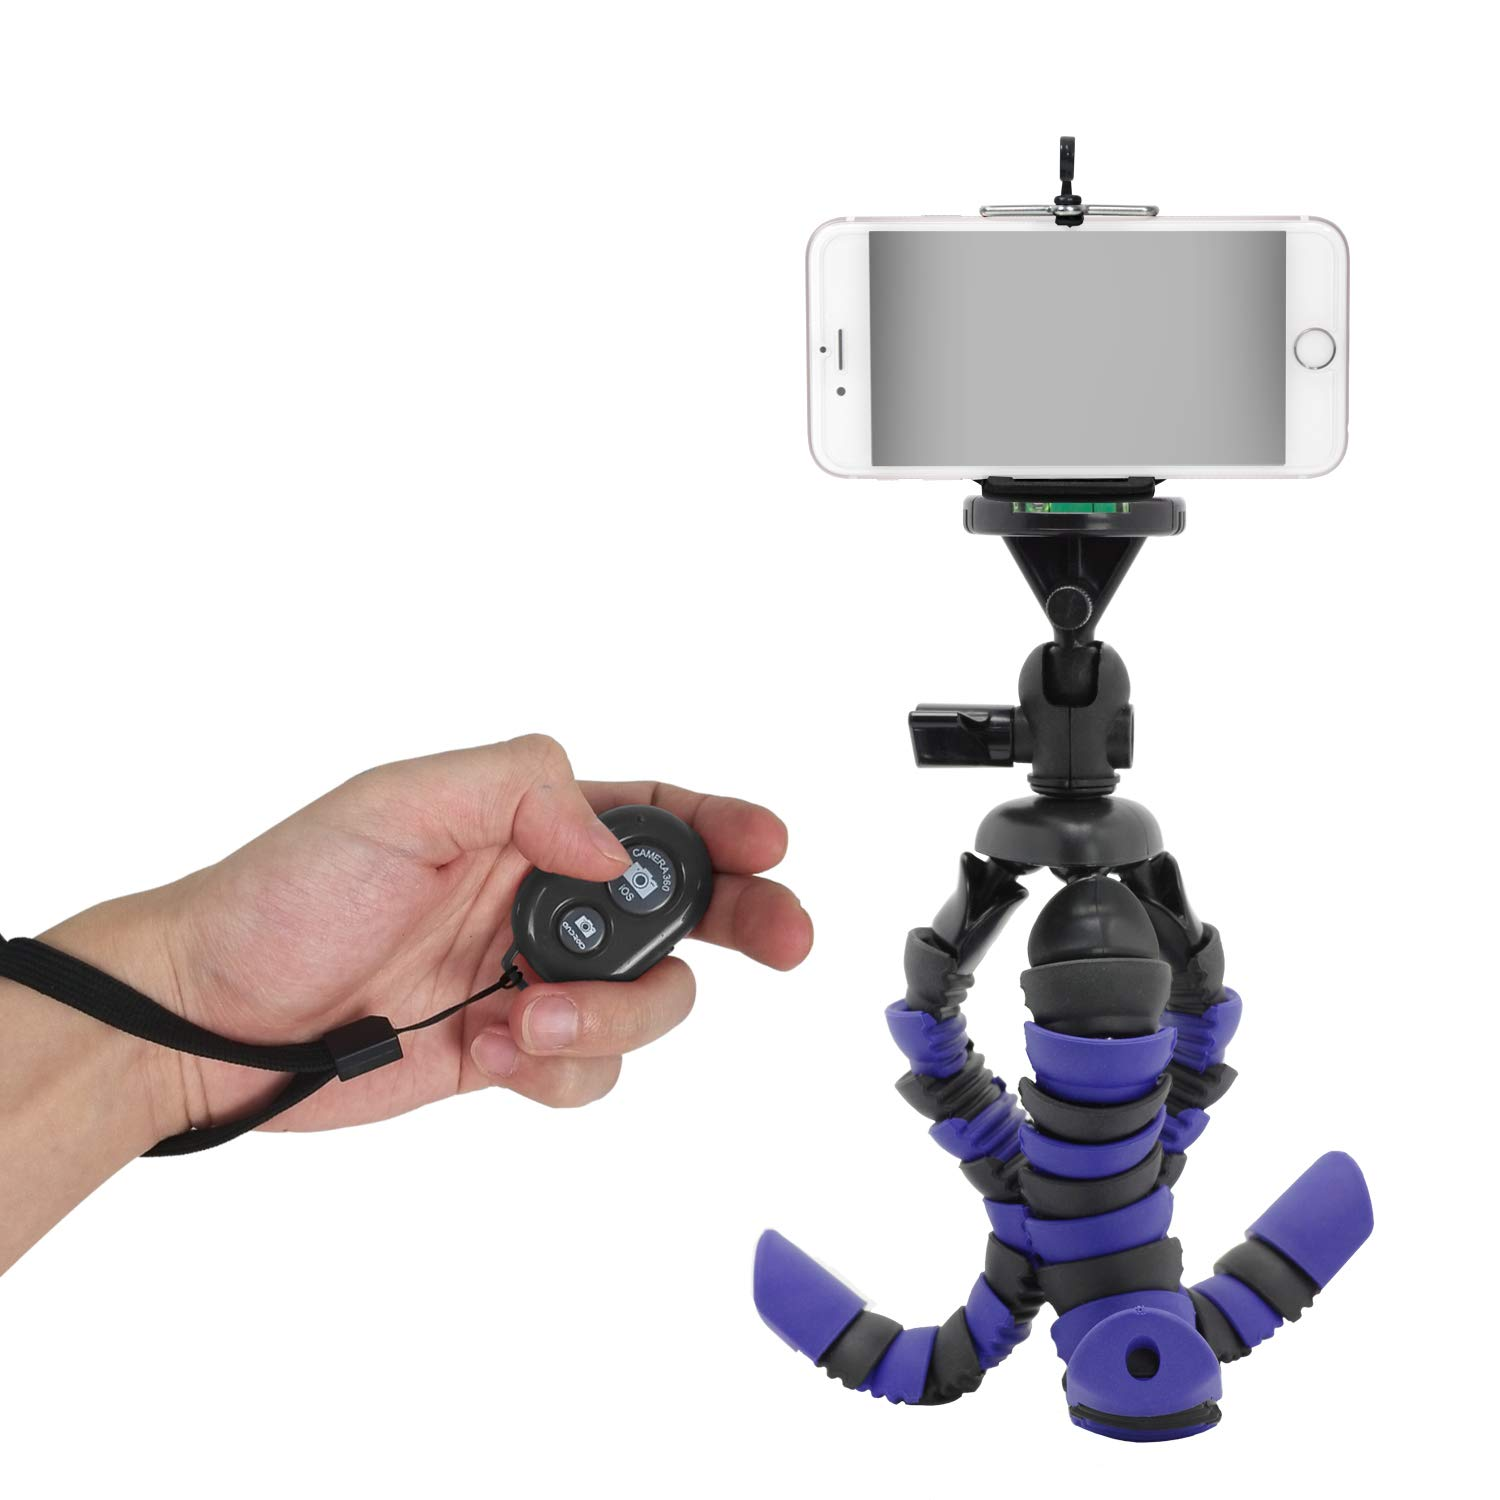 Julius Studio 12'' Flexible Octopus Mini Travel Tripod for Cameras and Camcorders with Cell Phone Holder Clip Adapter and Black Wireless Bluetooth Remote Control Shutter, JSAG441